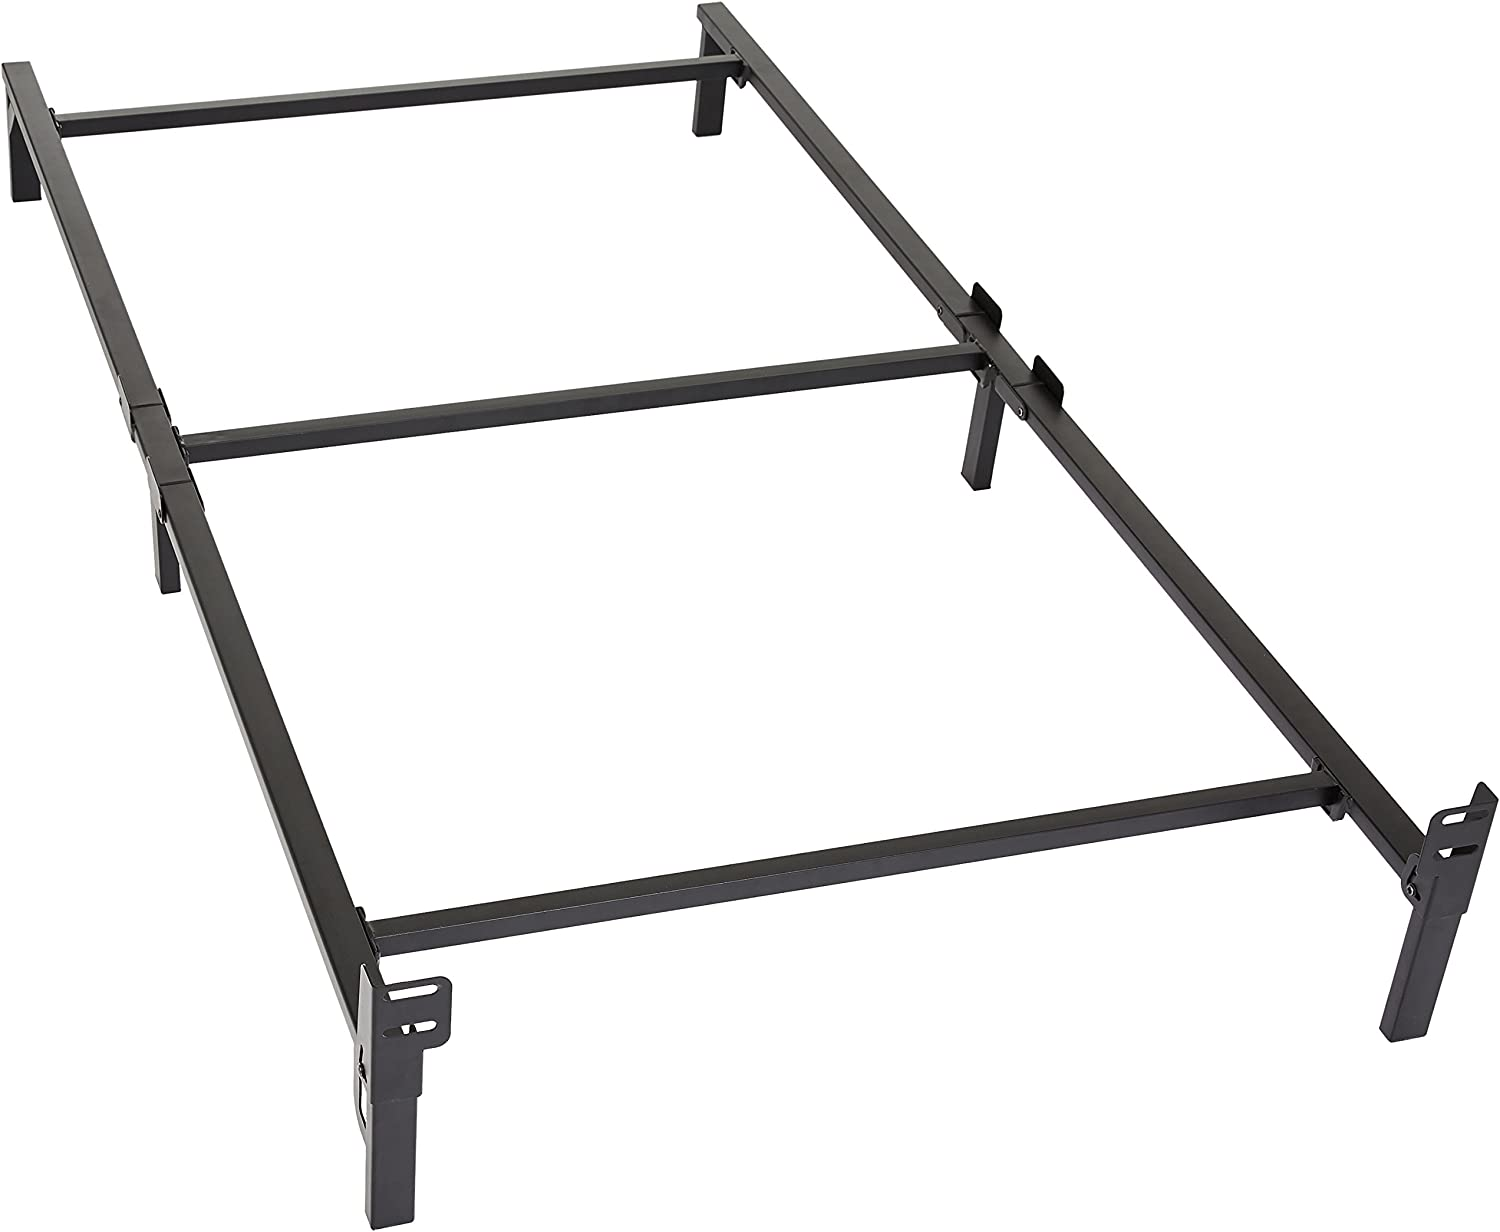 Amazon Basics 6-Leg Support Metal Bed Frame – Strong Support for Box Spring and Mattress Set – Twin Size Bed